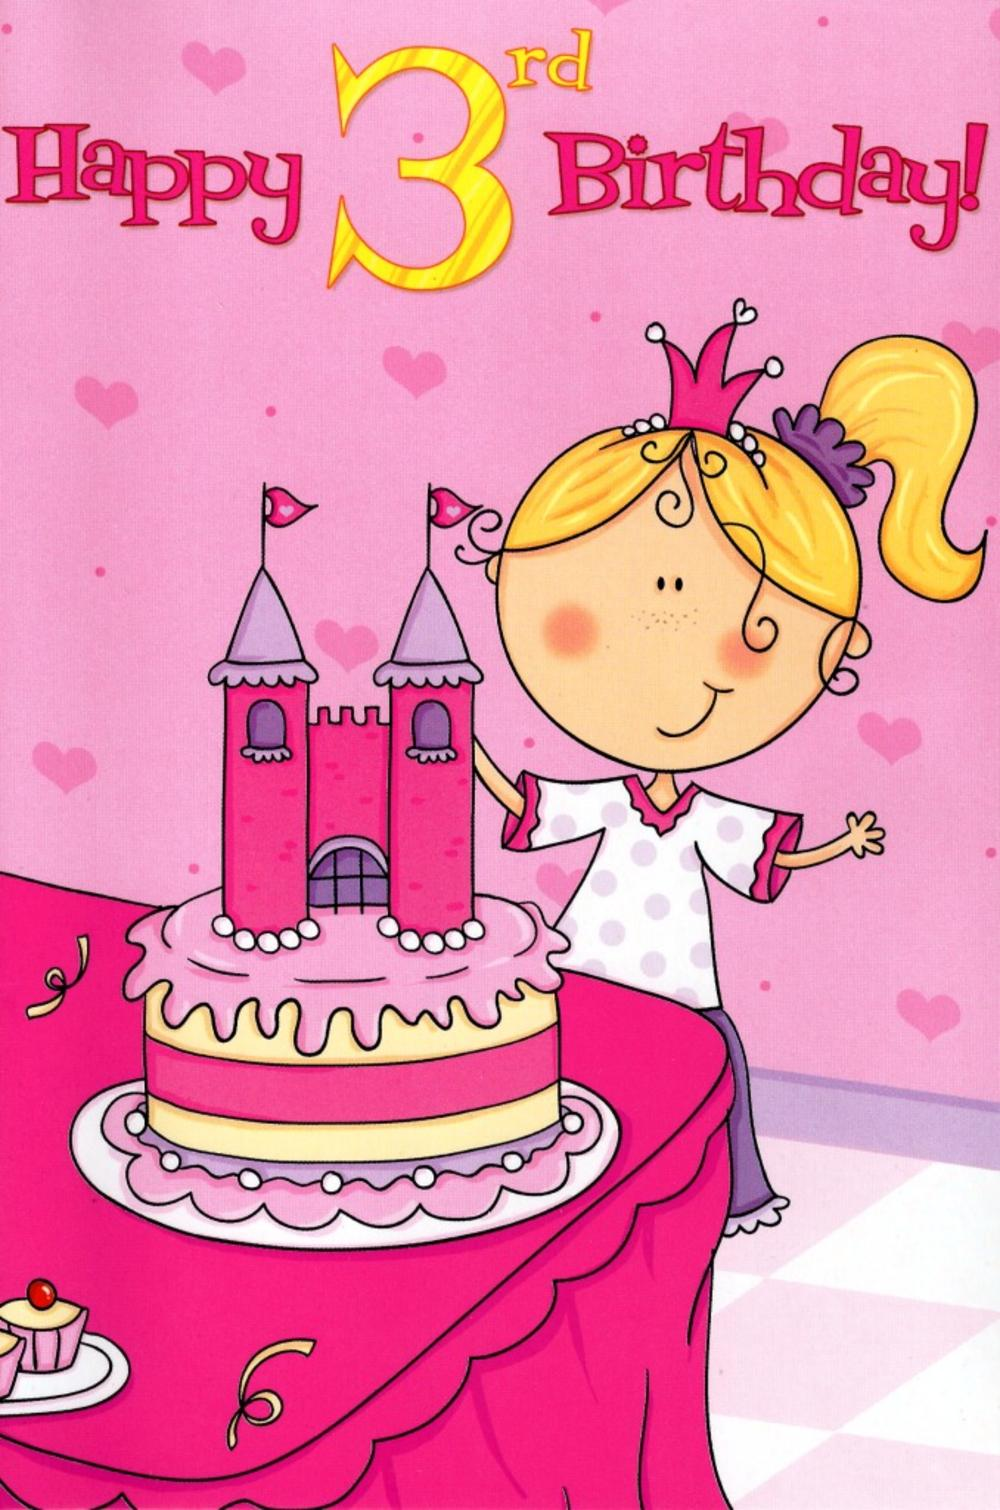 Little girl birthday greetings choice image greeting card examples 3 today special age girls 3rd birthday card cards love kates 3 today special age girls bookmarktalkfo Image collections